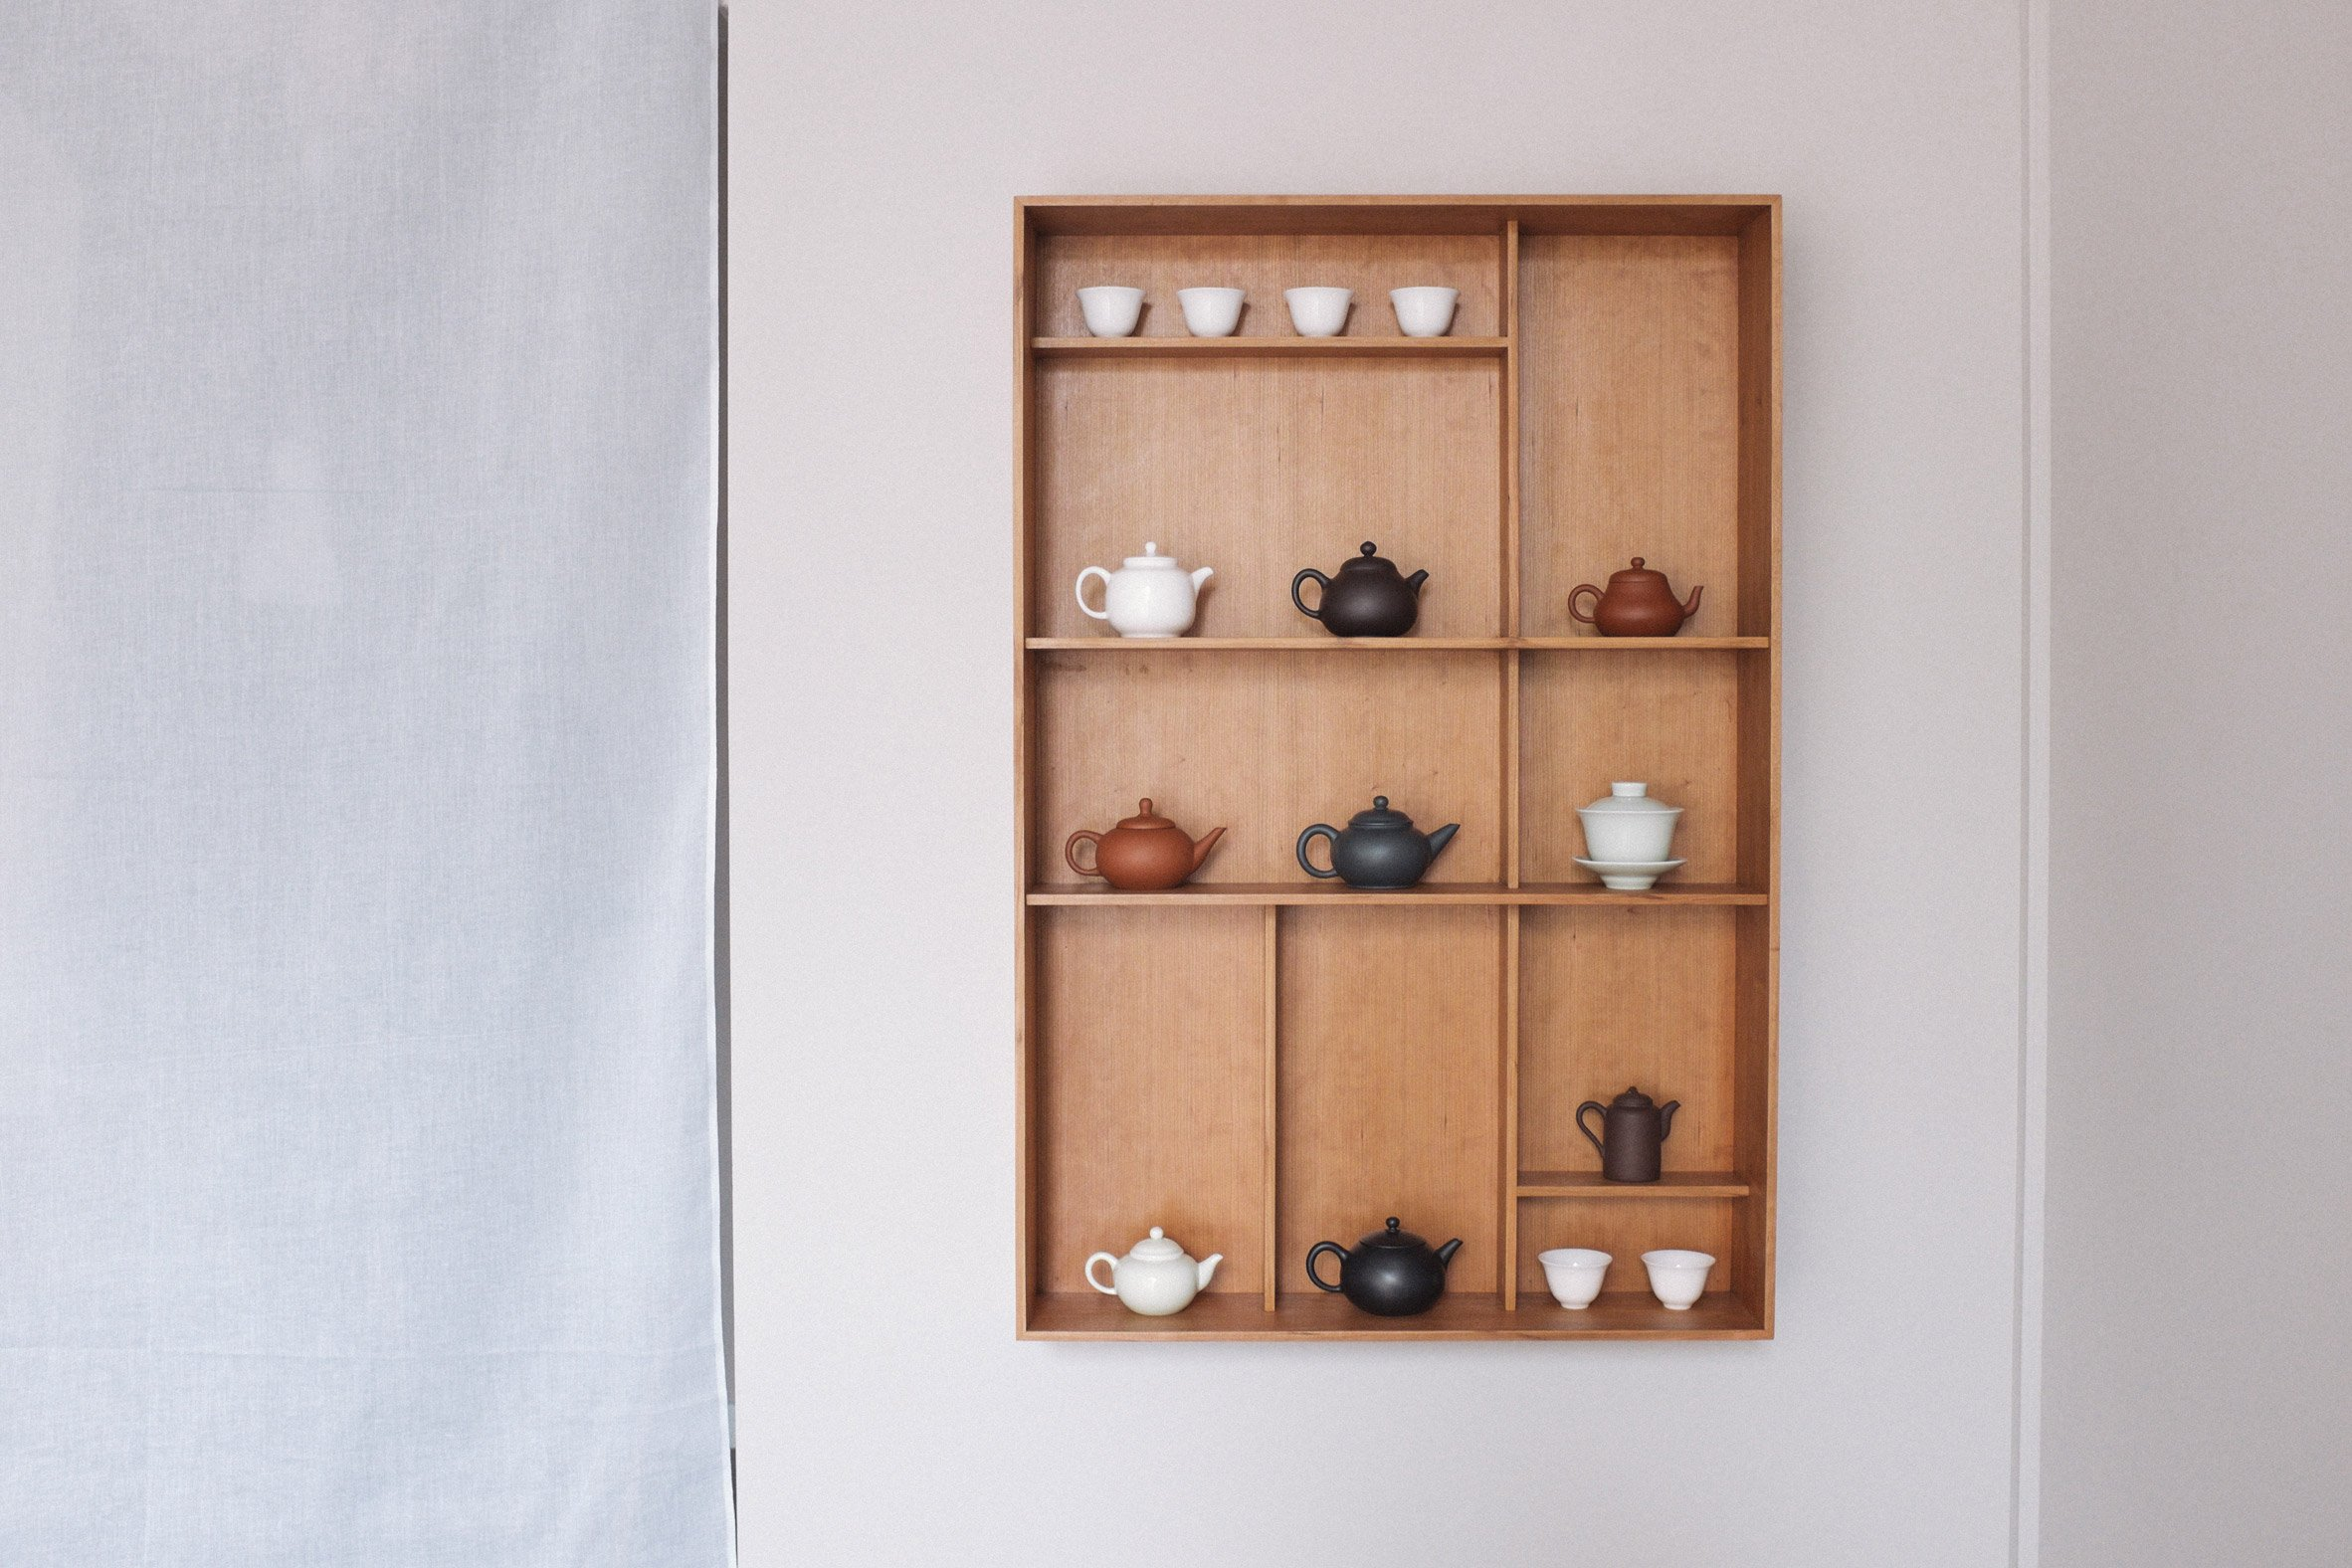 Native & Co designs clay Wu teapots to suit specific brews